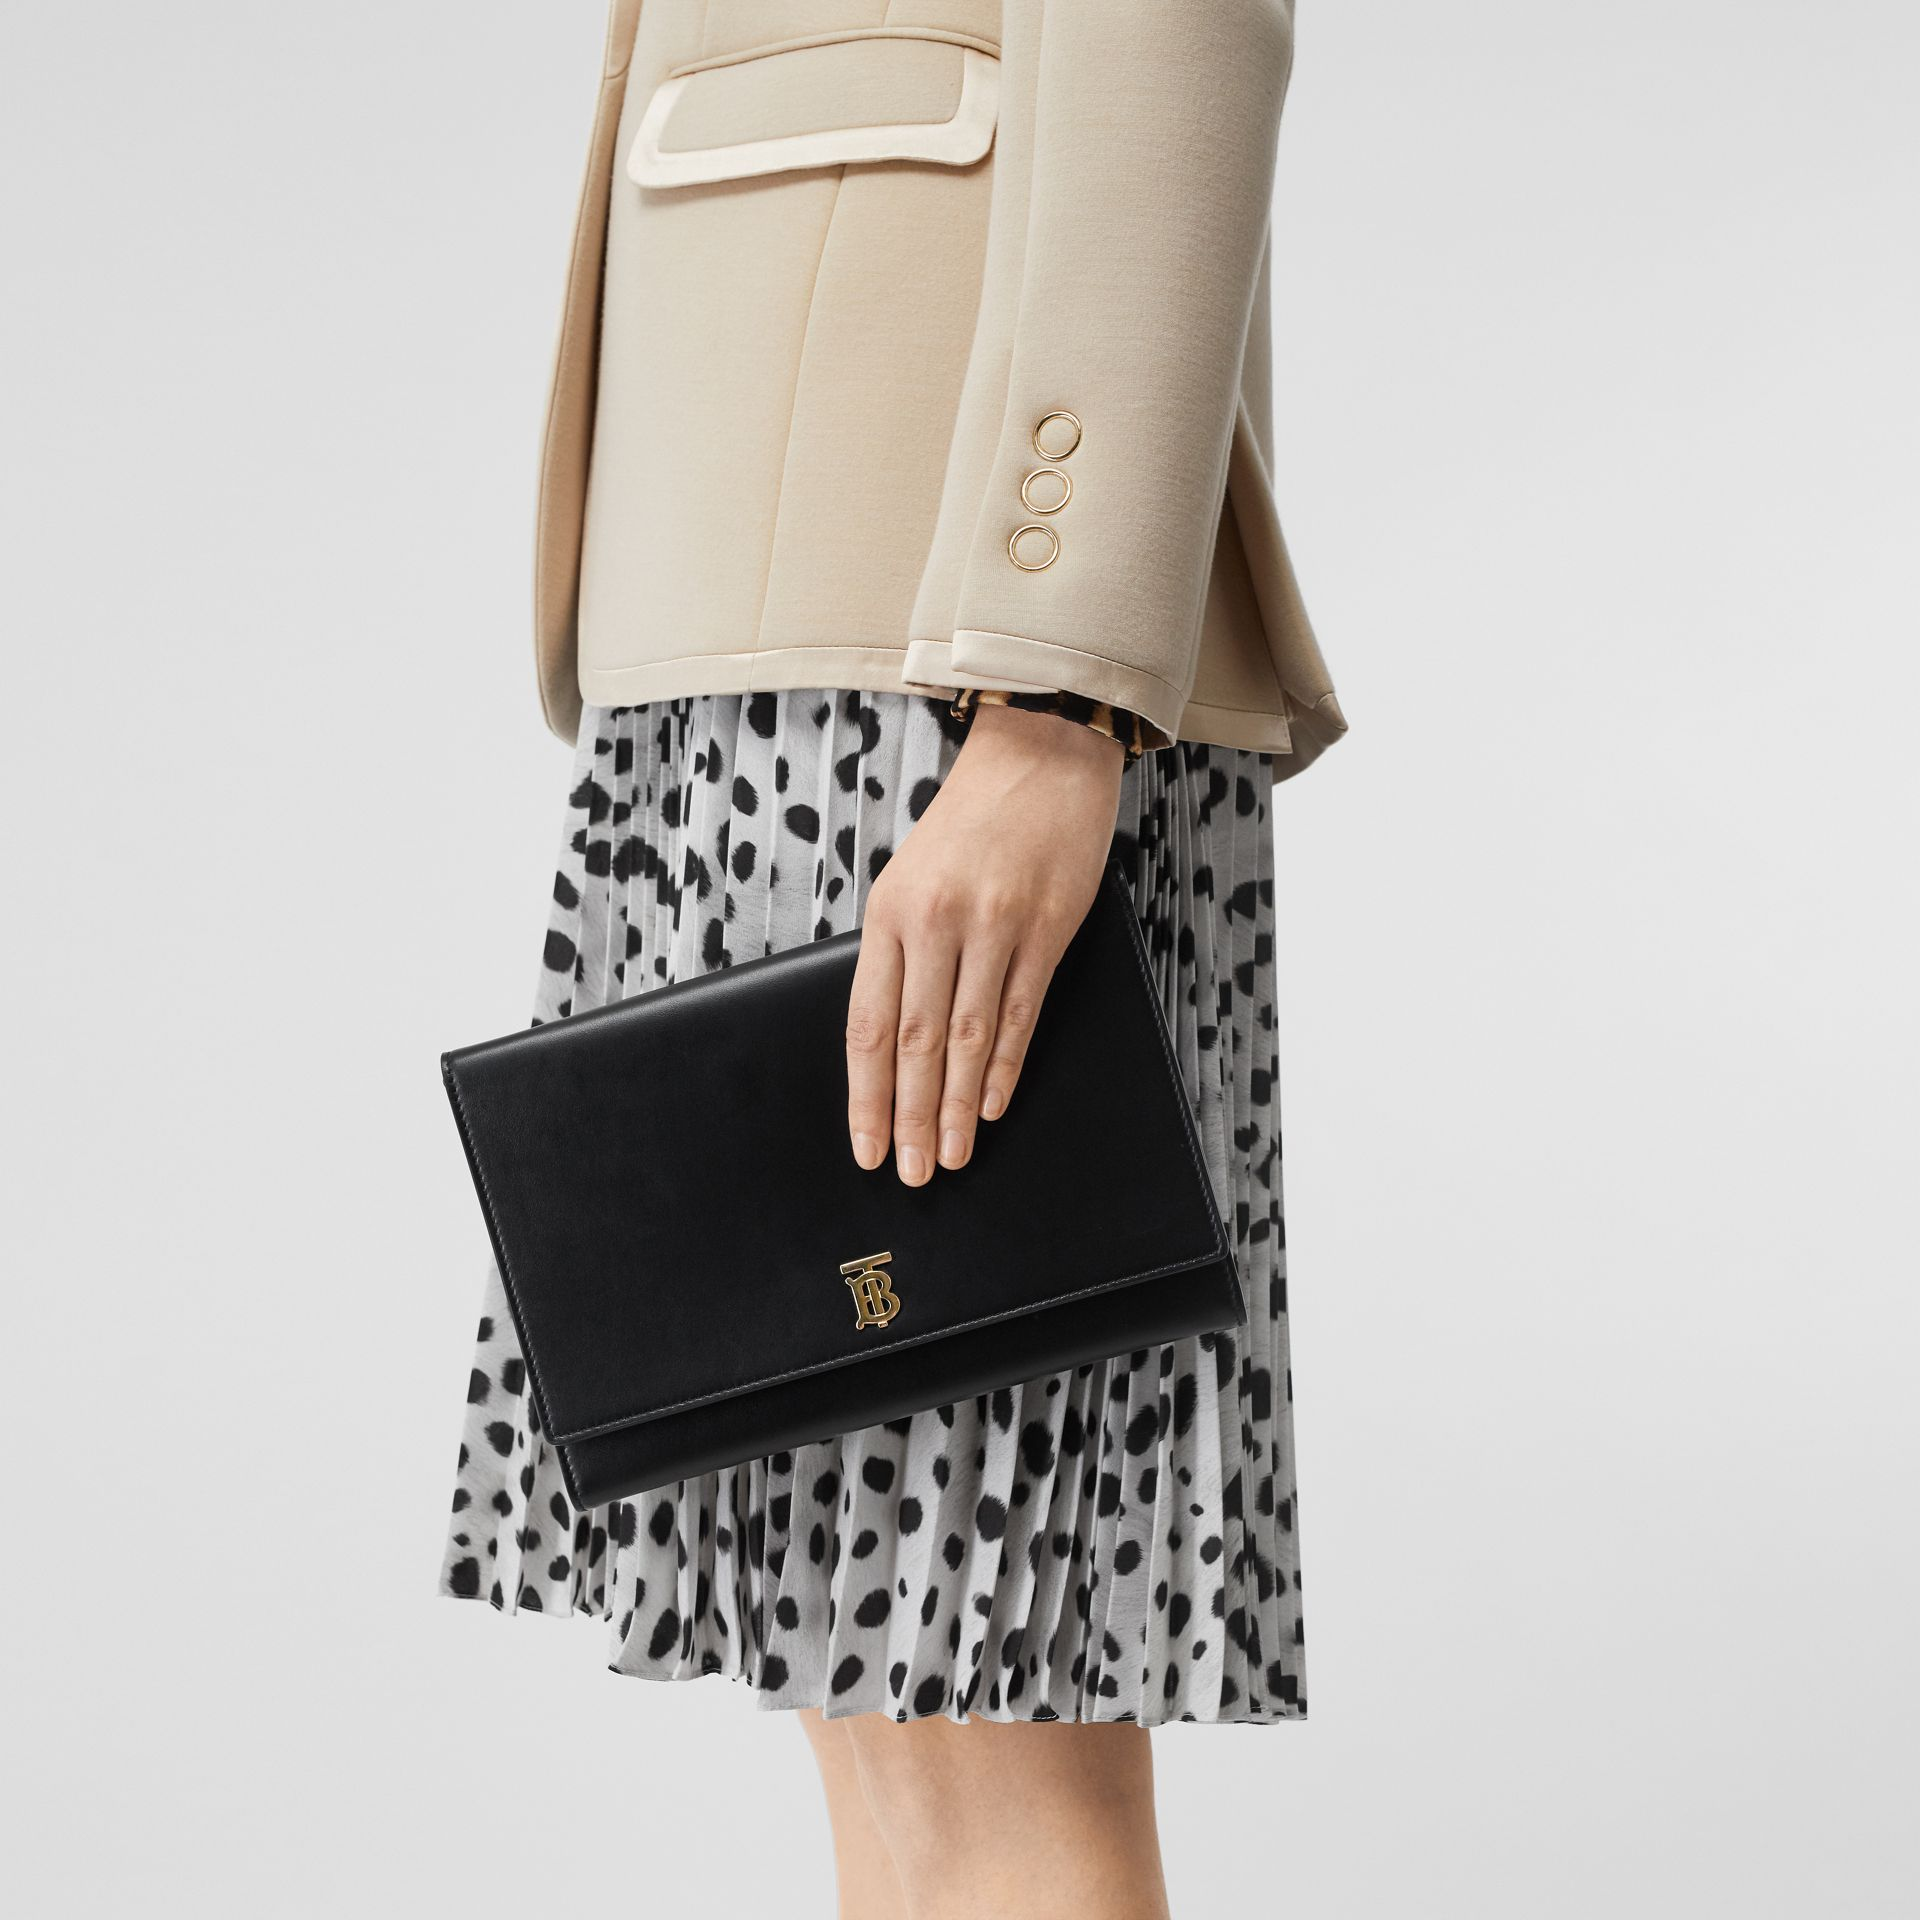 Monogram Motif Leather Bag with Detachable Strap in Black - Women | Burberry Canada - gallery image 2